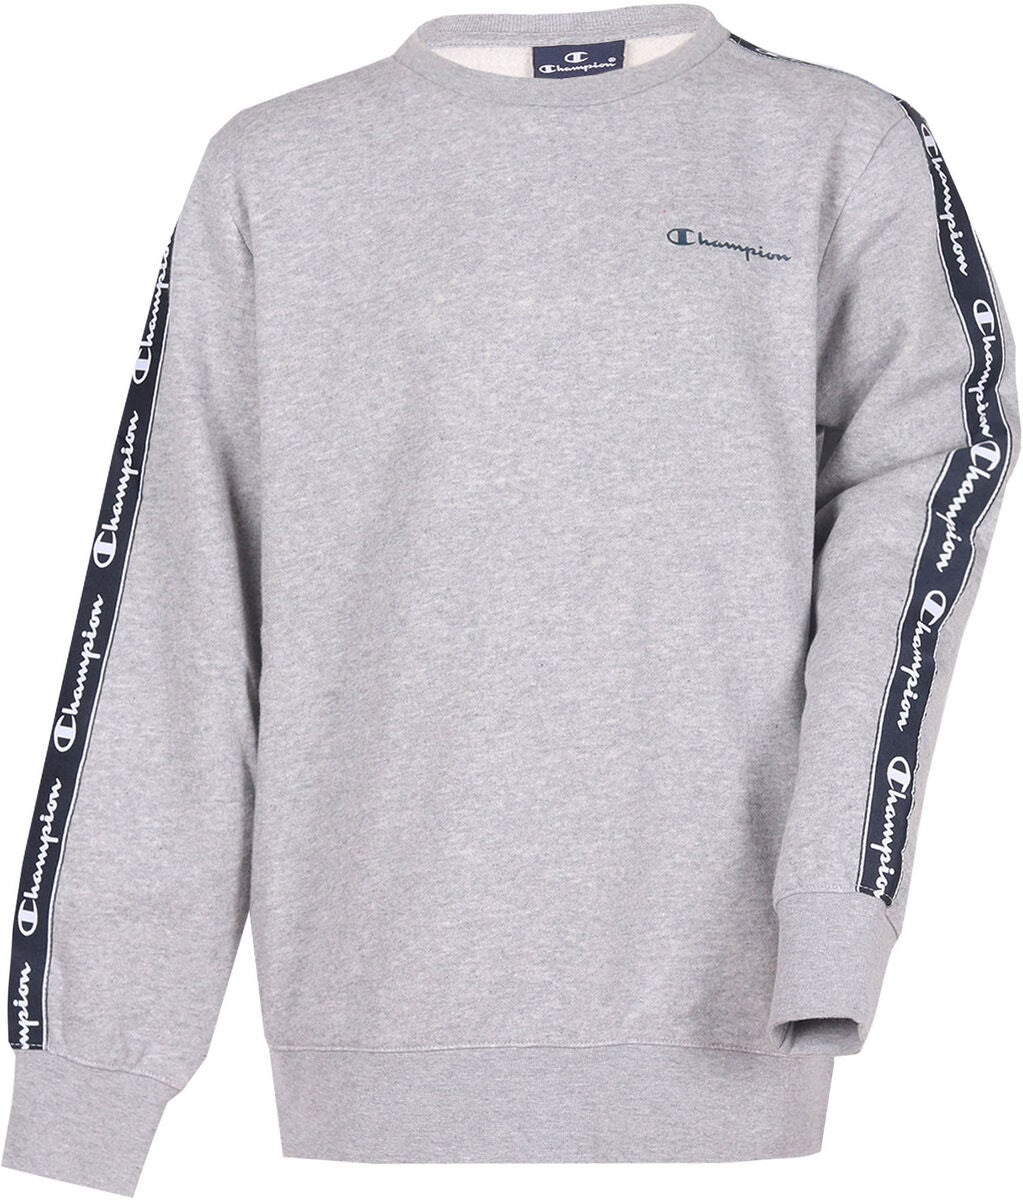 Champion Kids Crewneck Tröja, Grey Melange Light